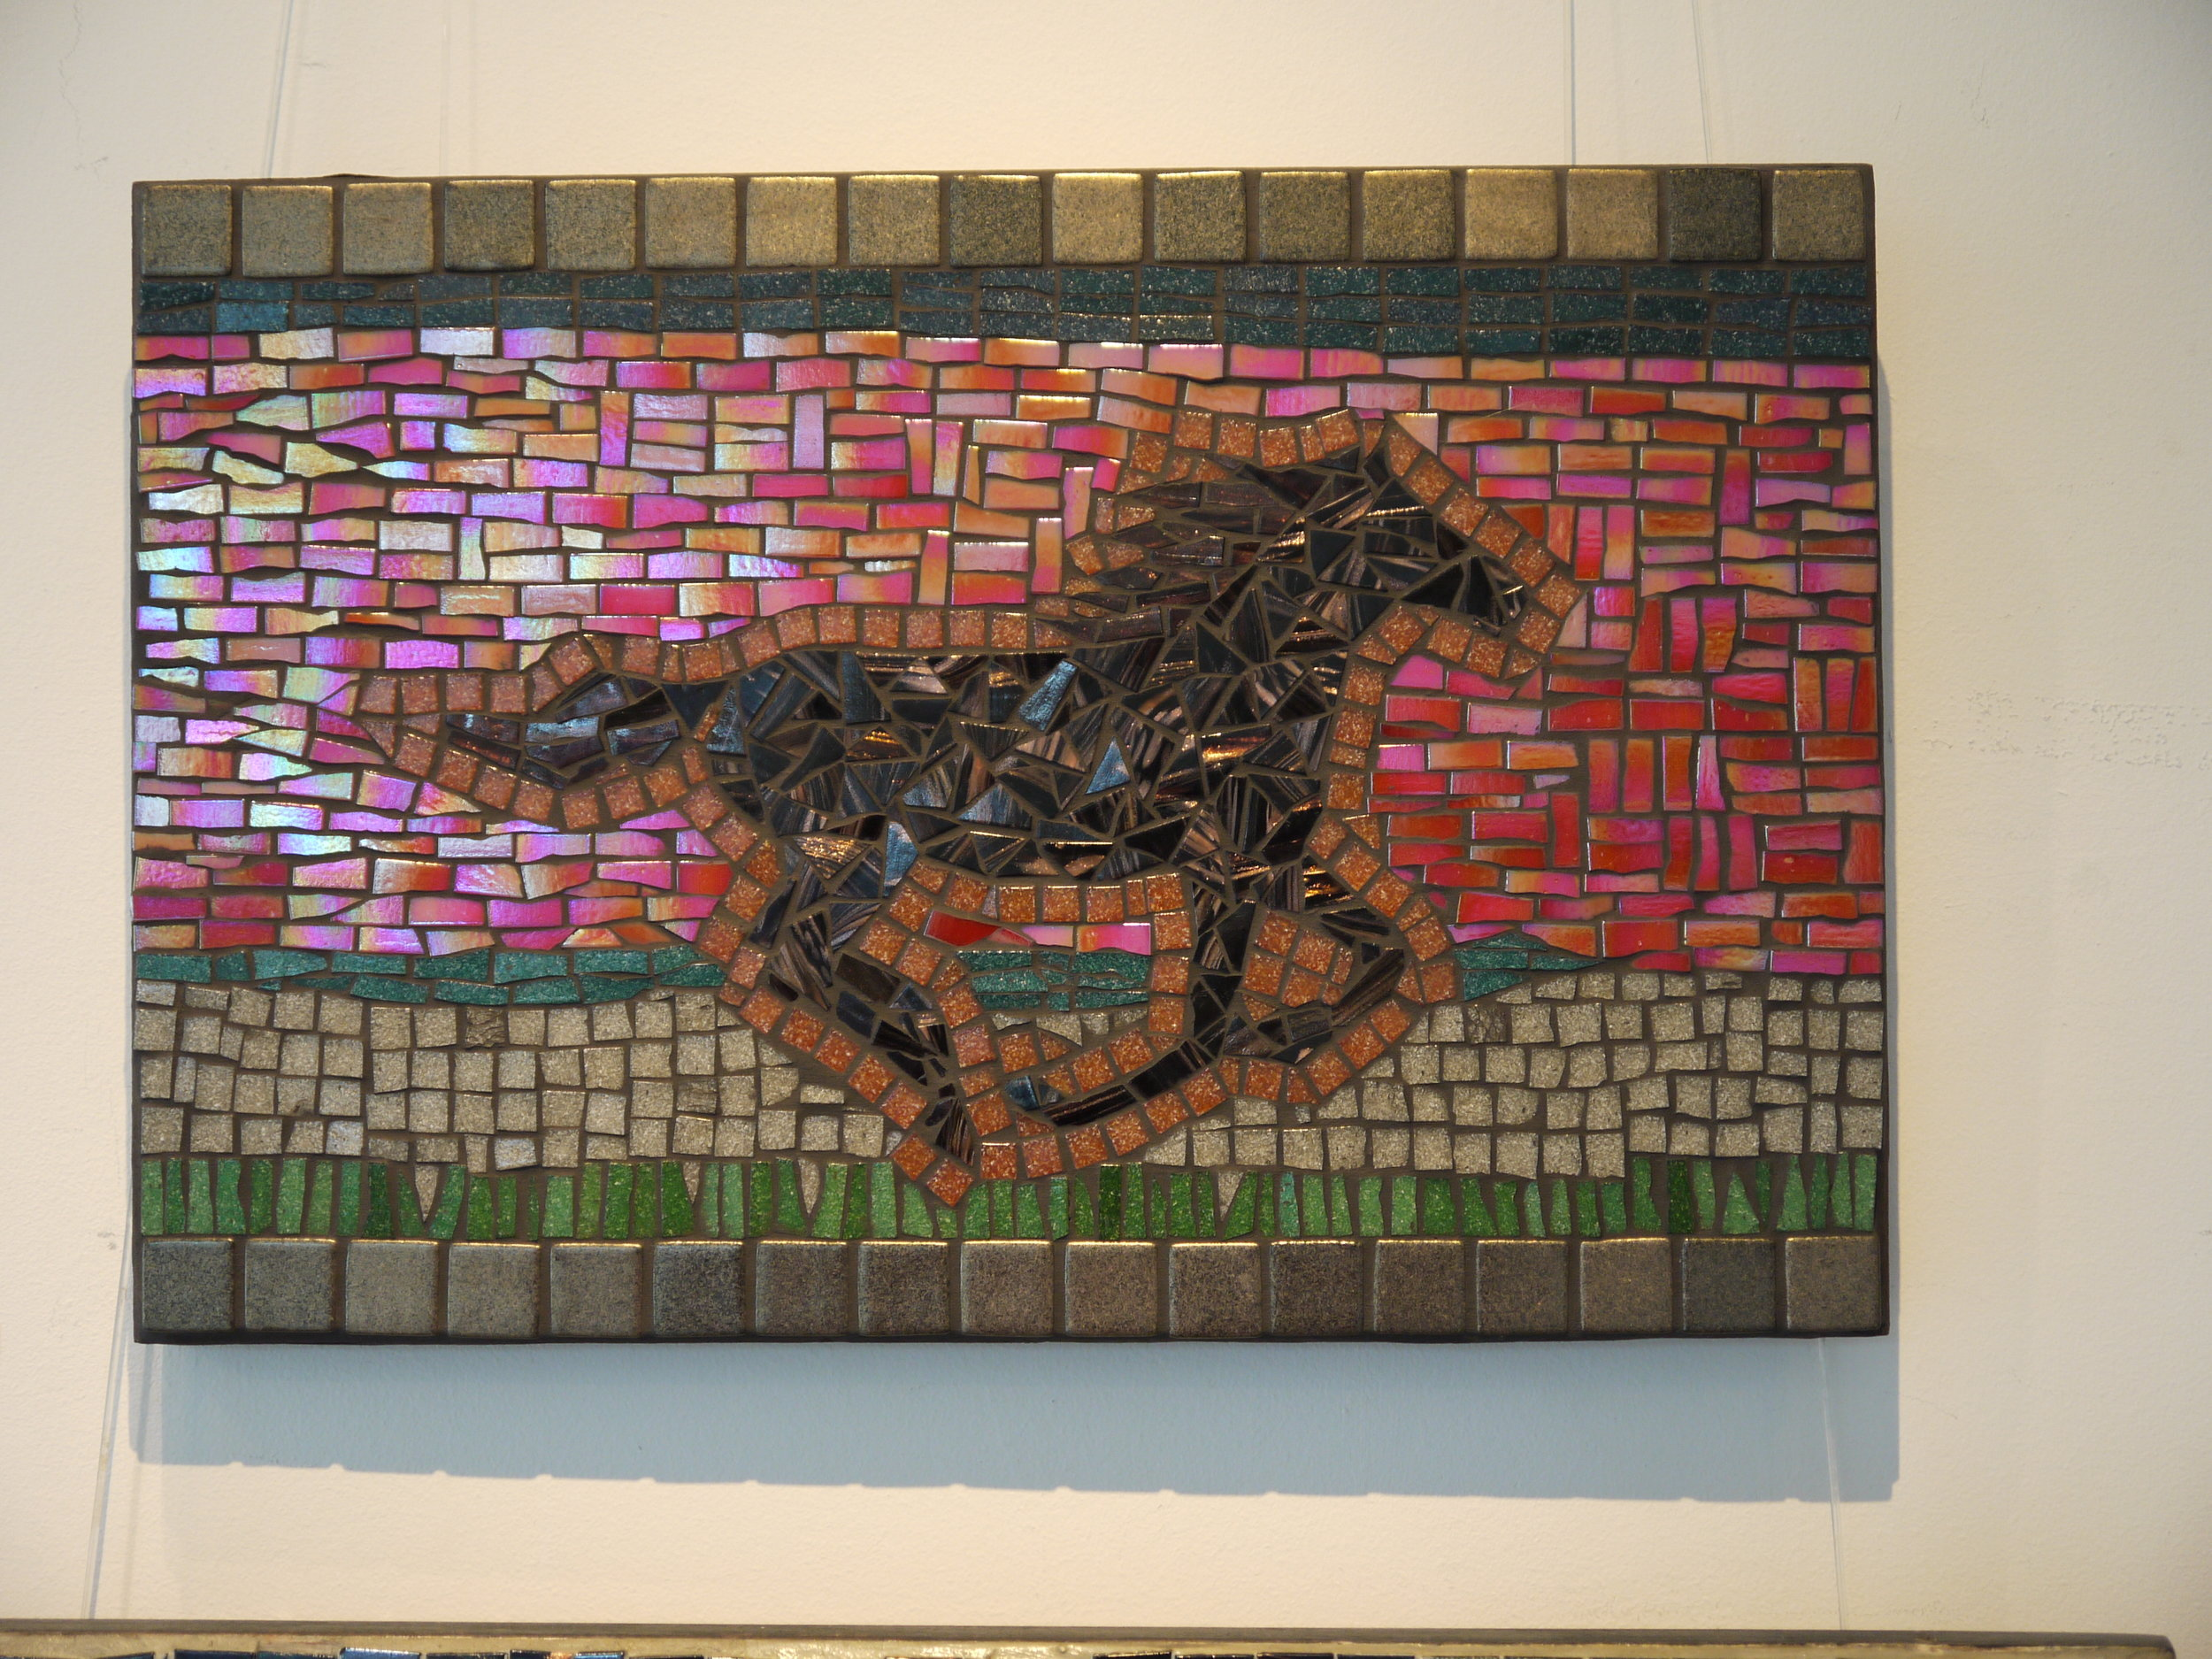 'The Wind is a Horse' mosaic